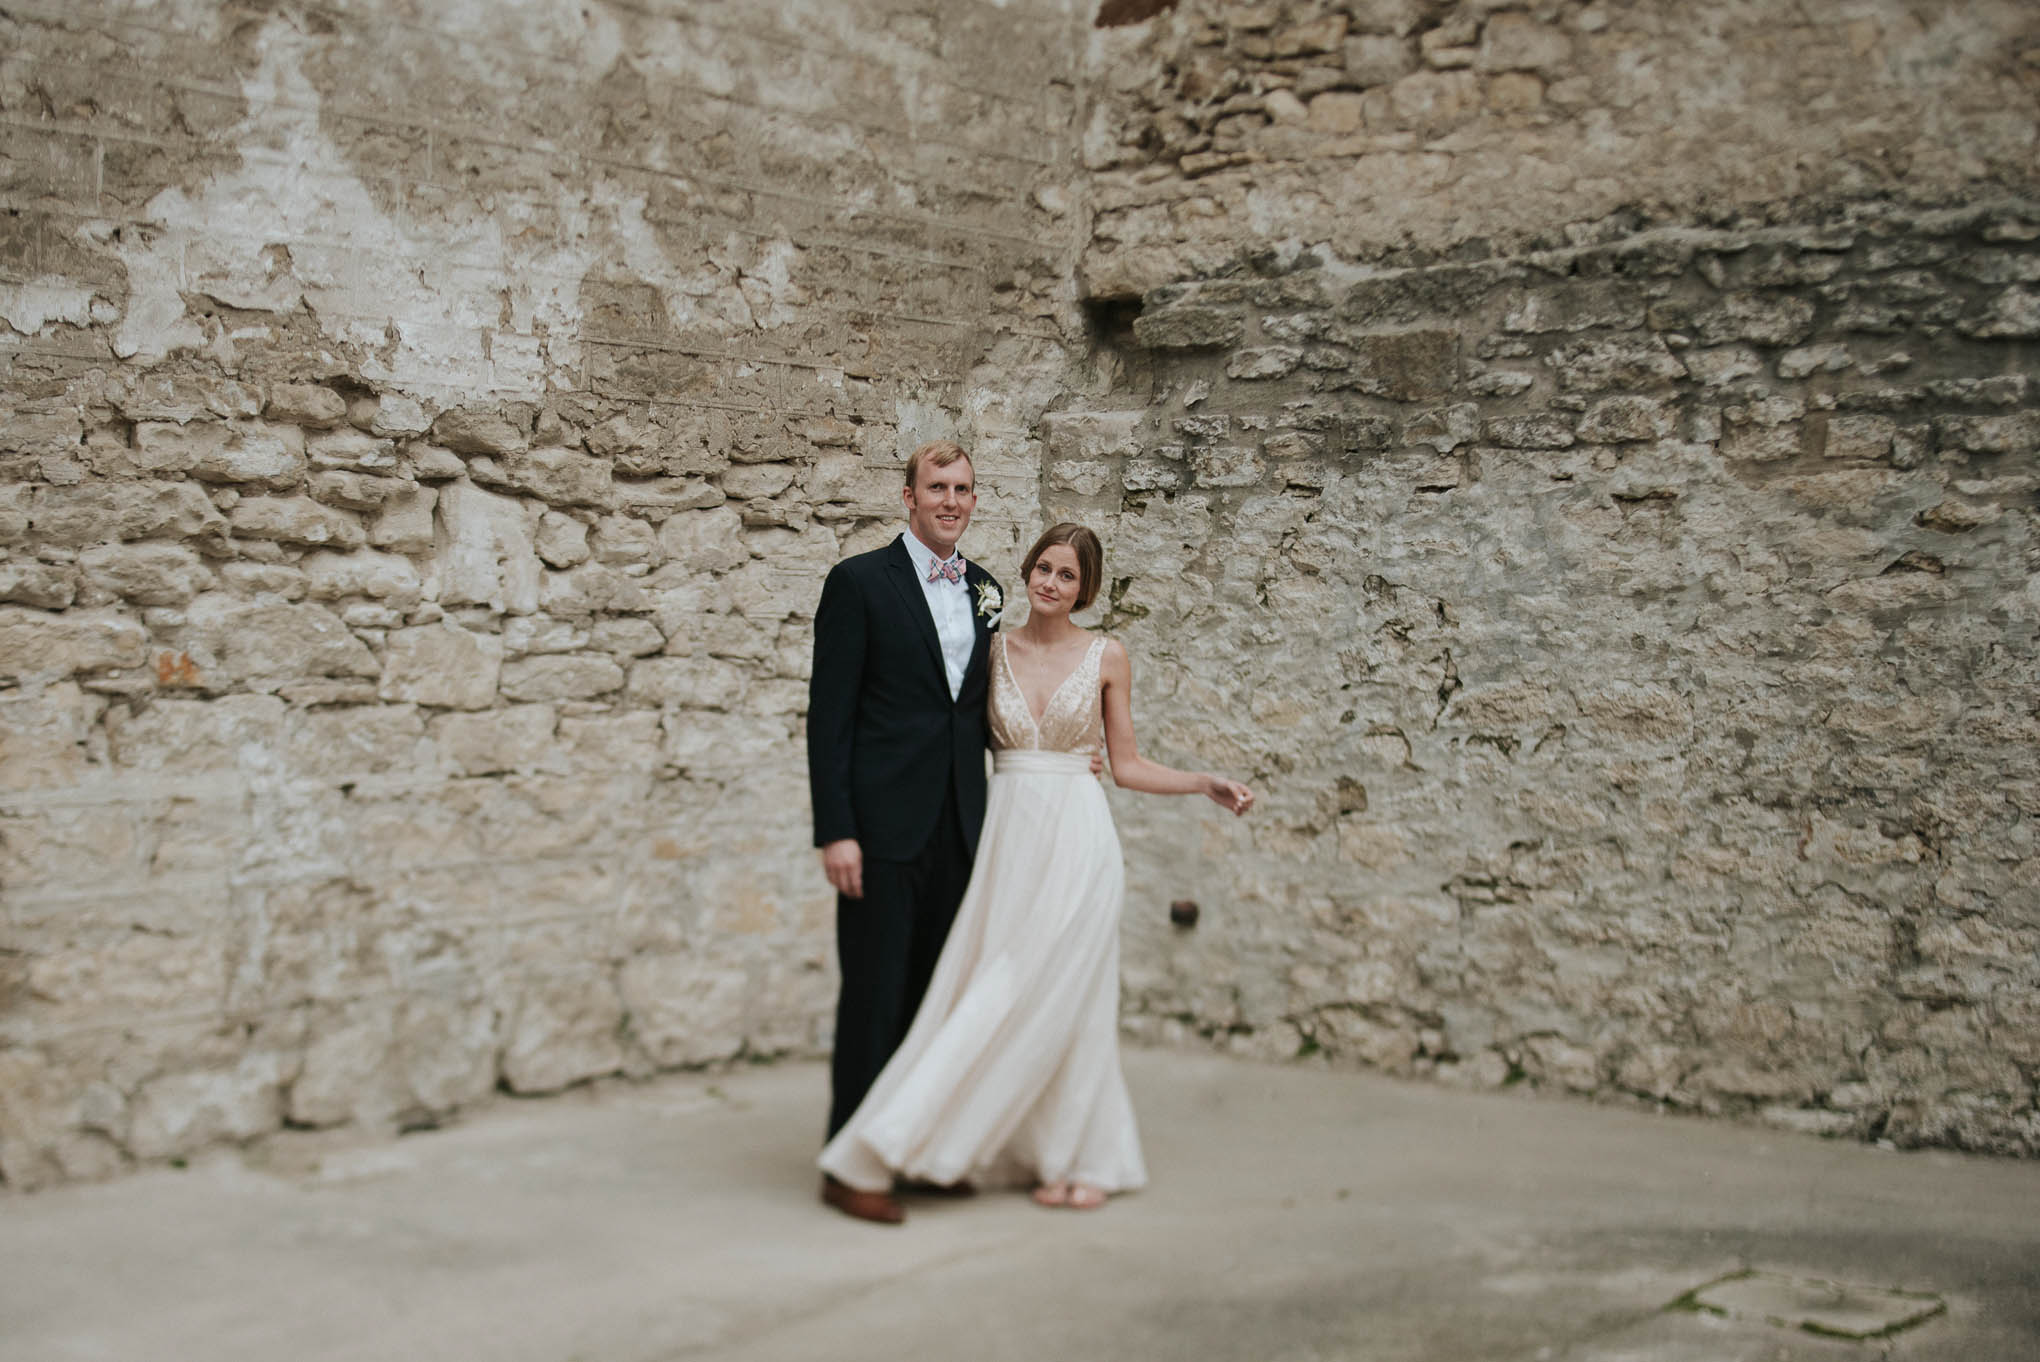 Categories: Weddings-Real Wedding: Moya + Jeff - Photography by Jess Craven at Daring Wanderer